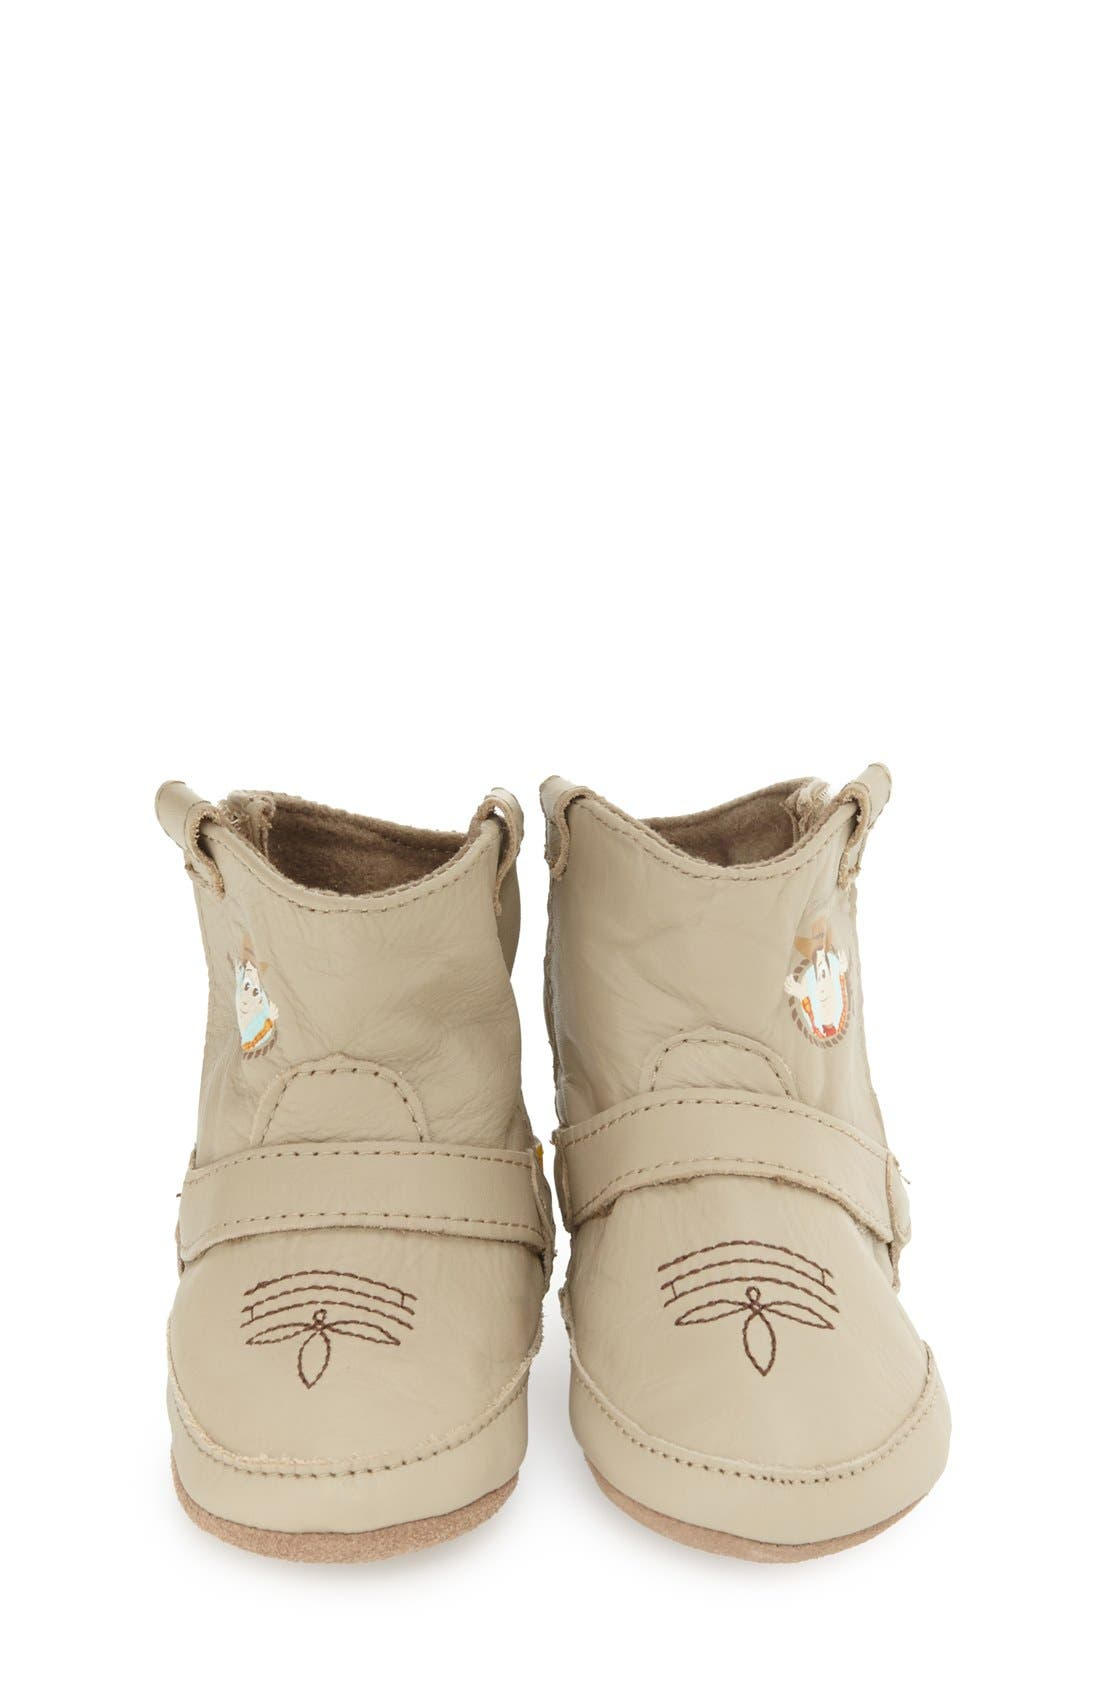 'Disney<sup>®</sup> Woody<sup>®</sup> Bootie' Crib Shoe,                             Alternate thumbnail 4, color,